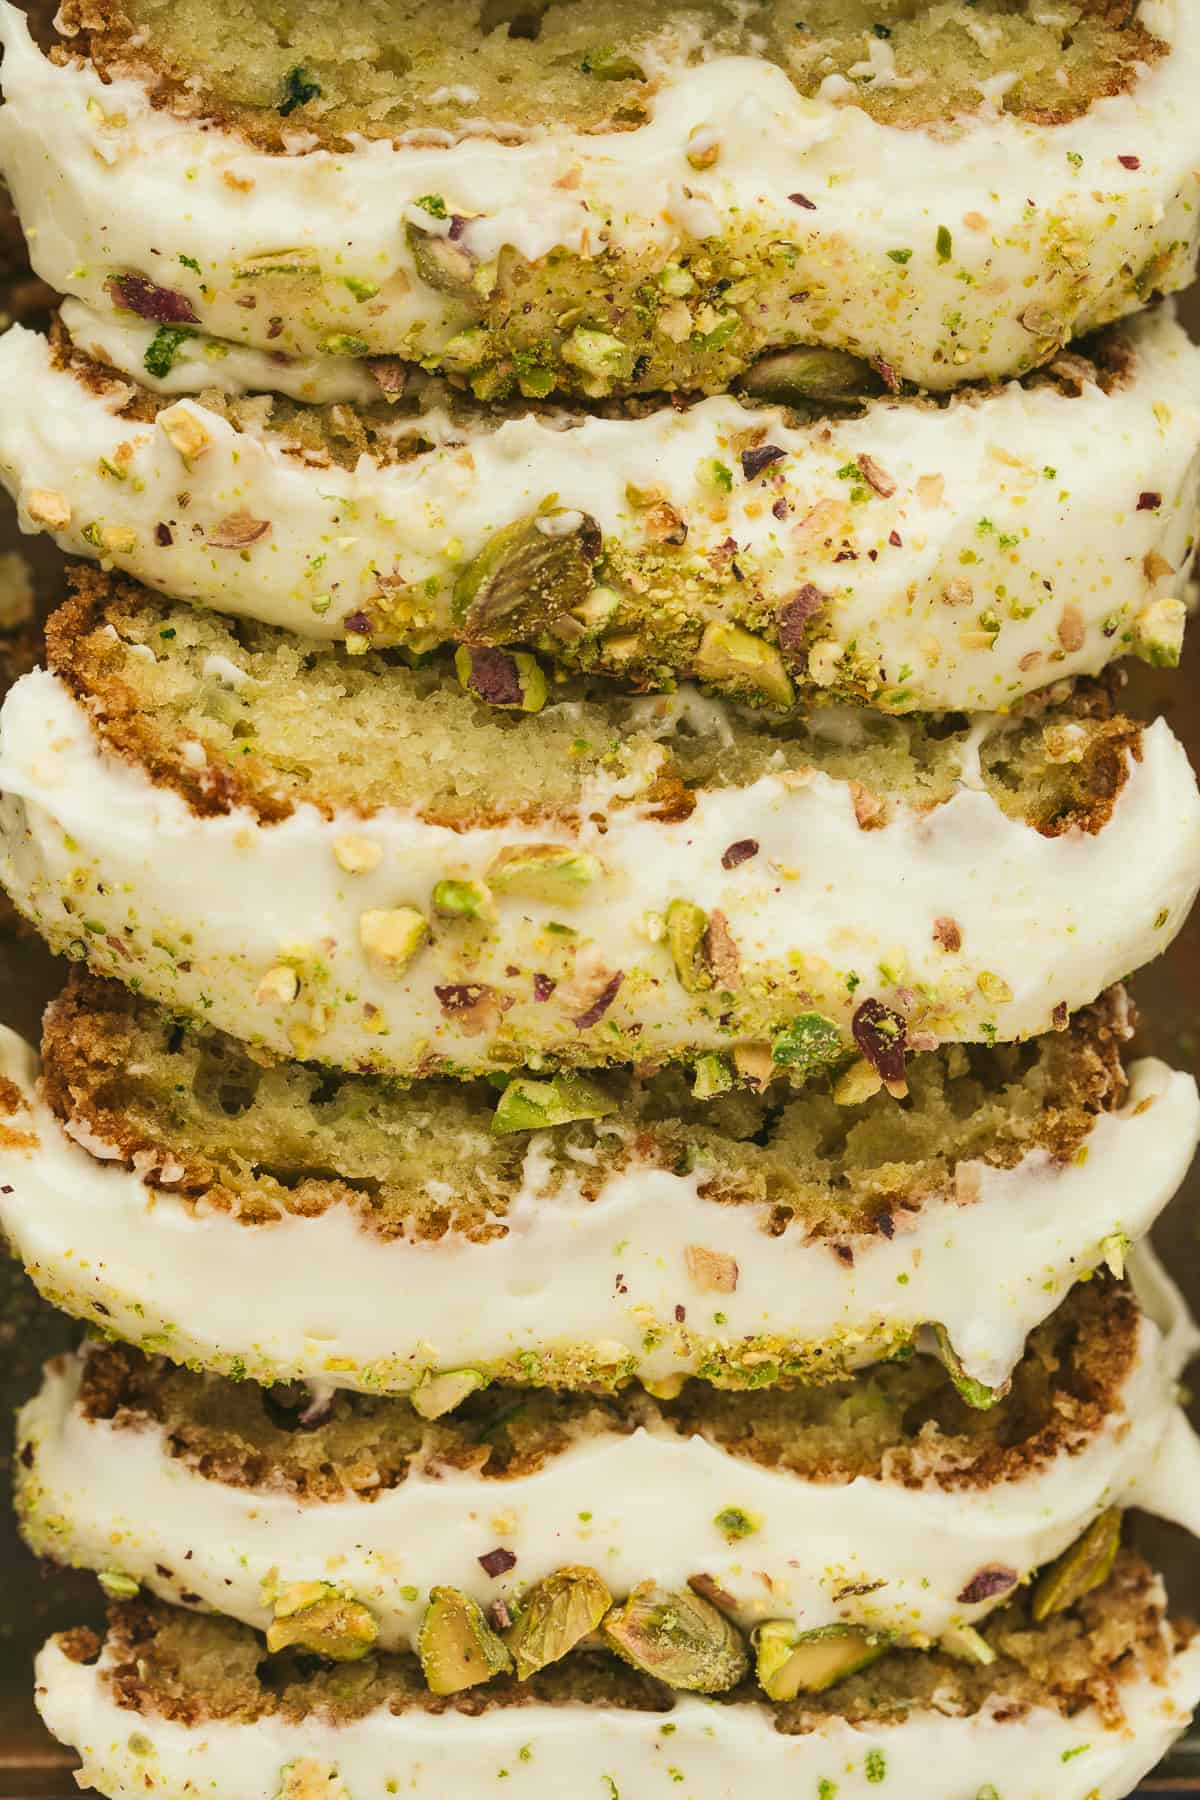 A zucchini cake cut into slices and topped with frosting and chopped pistachios.